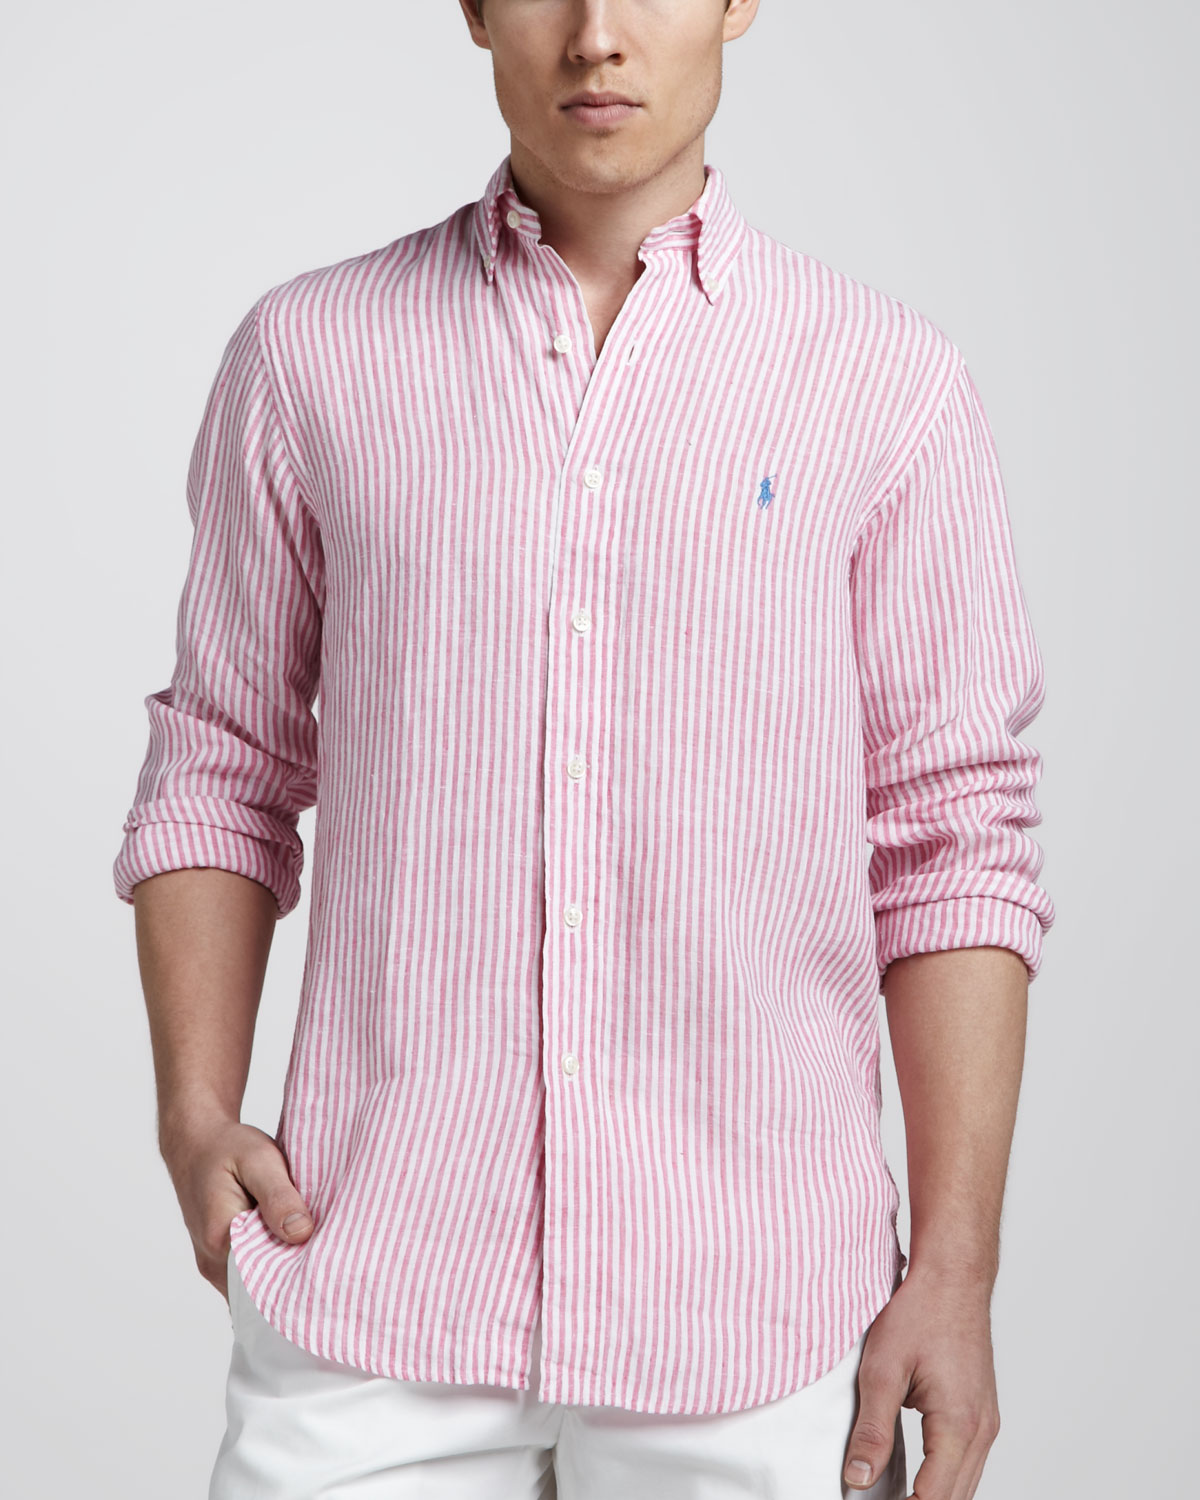 175a6a234 ... coupon code for lyst polo ralph lauren striped linen sport shirt in  pink for men 6b759